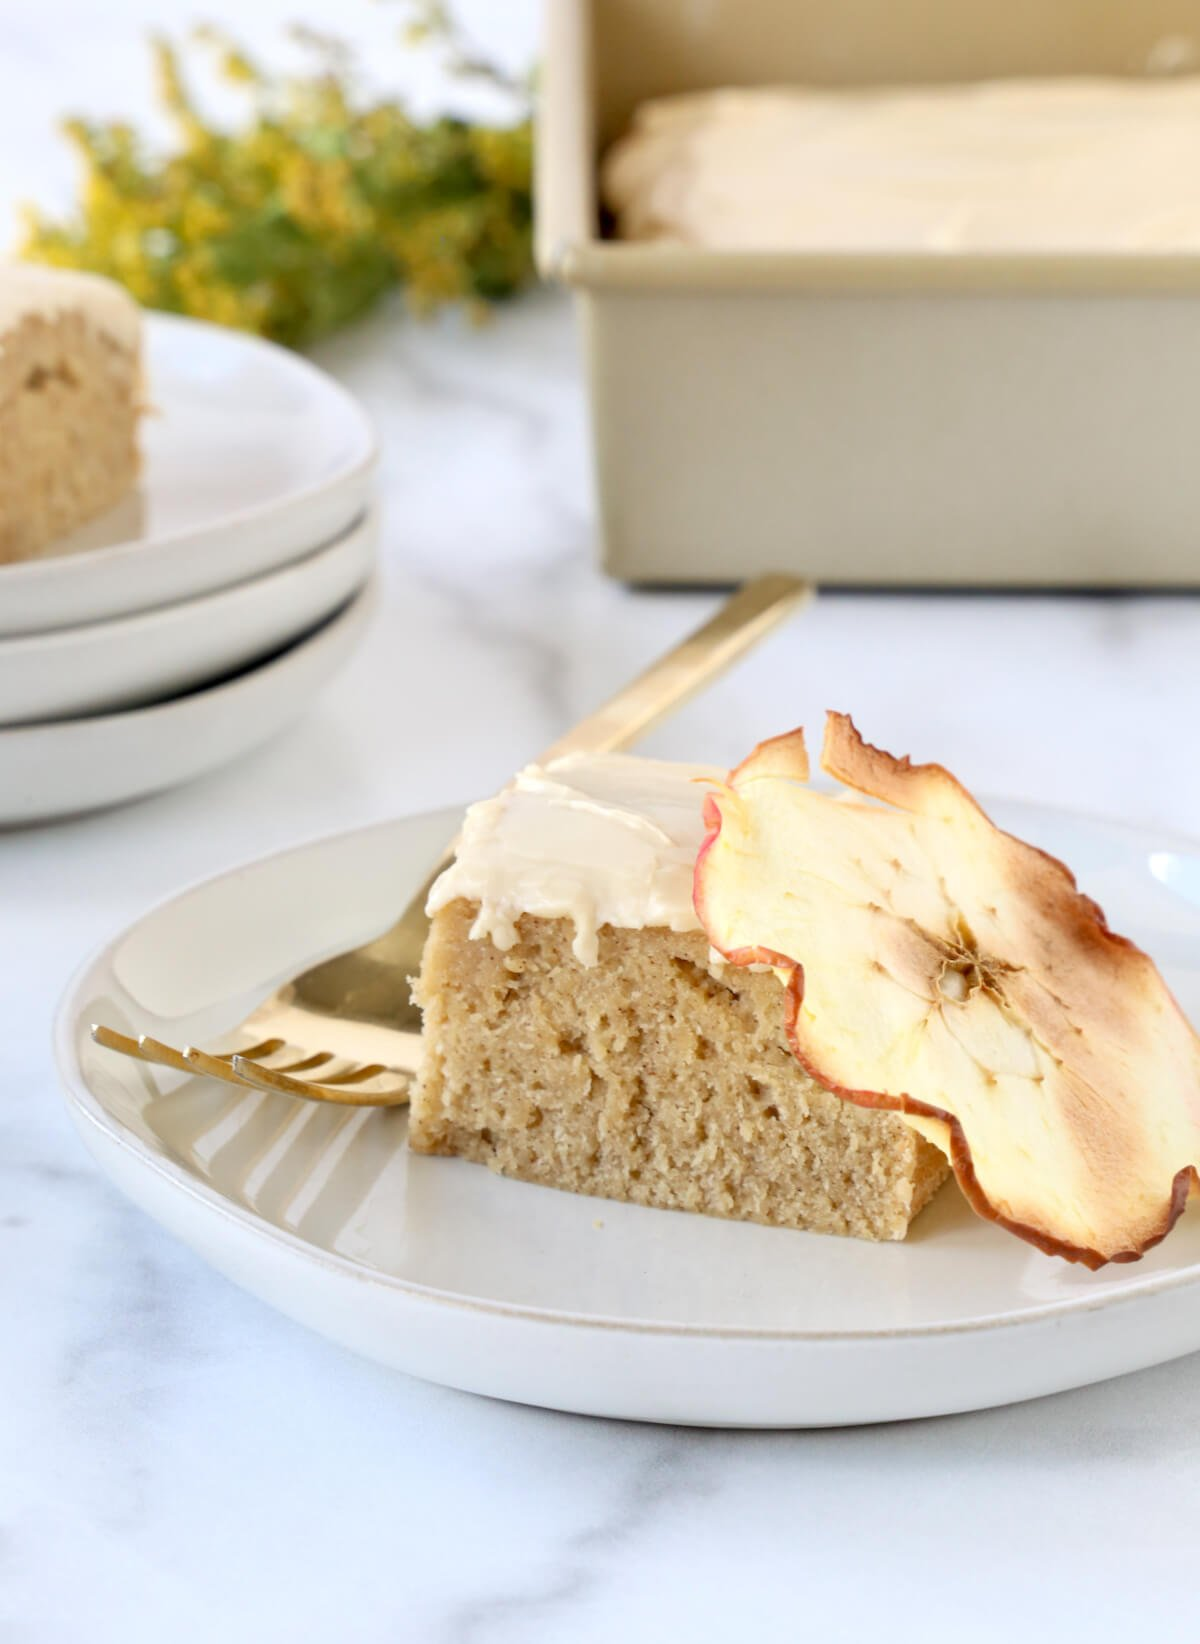 A square piece of cake with a dried apple on a gray dessert place and a gold fork.